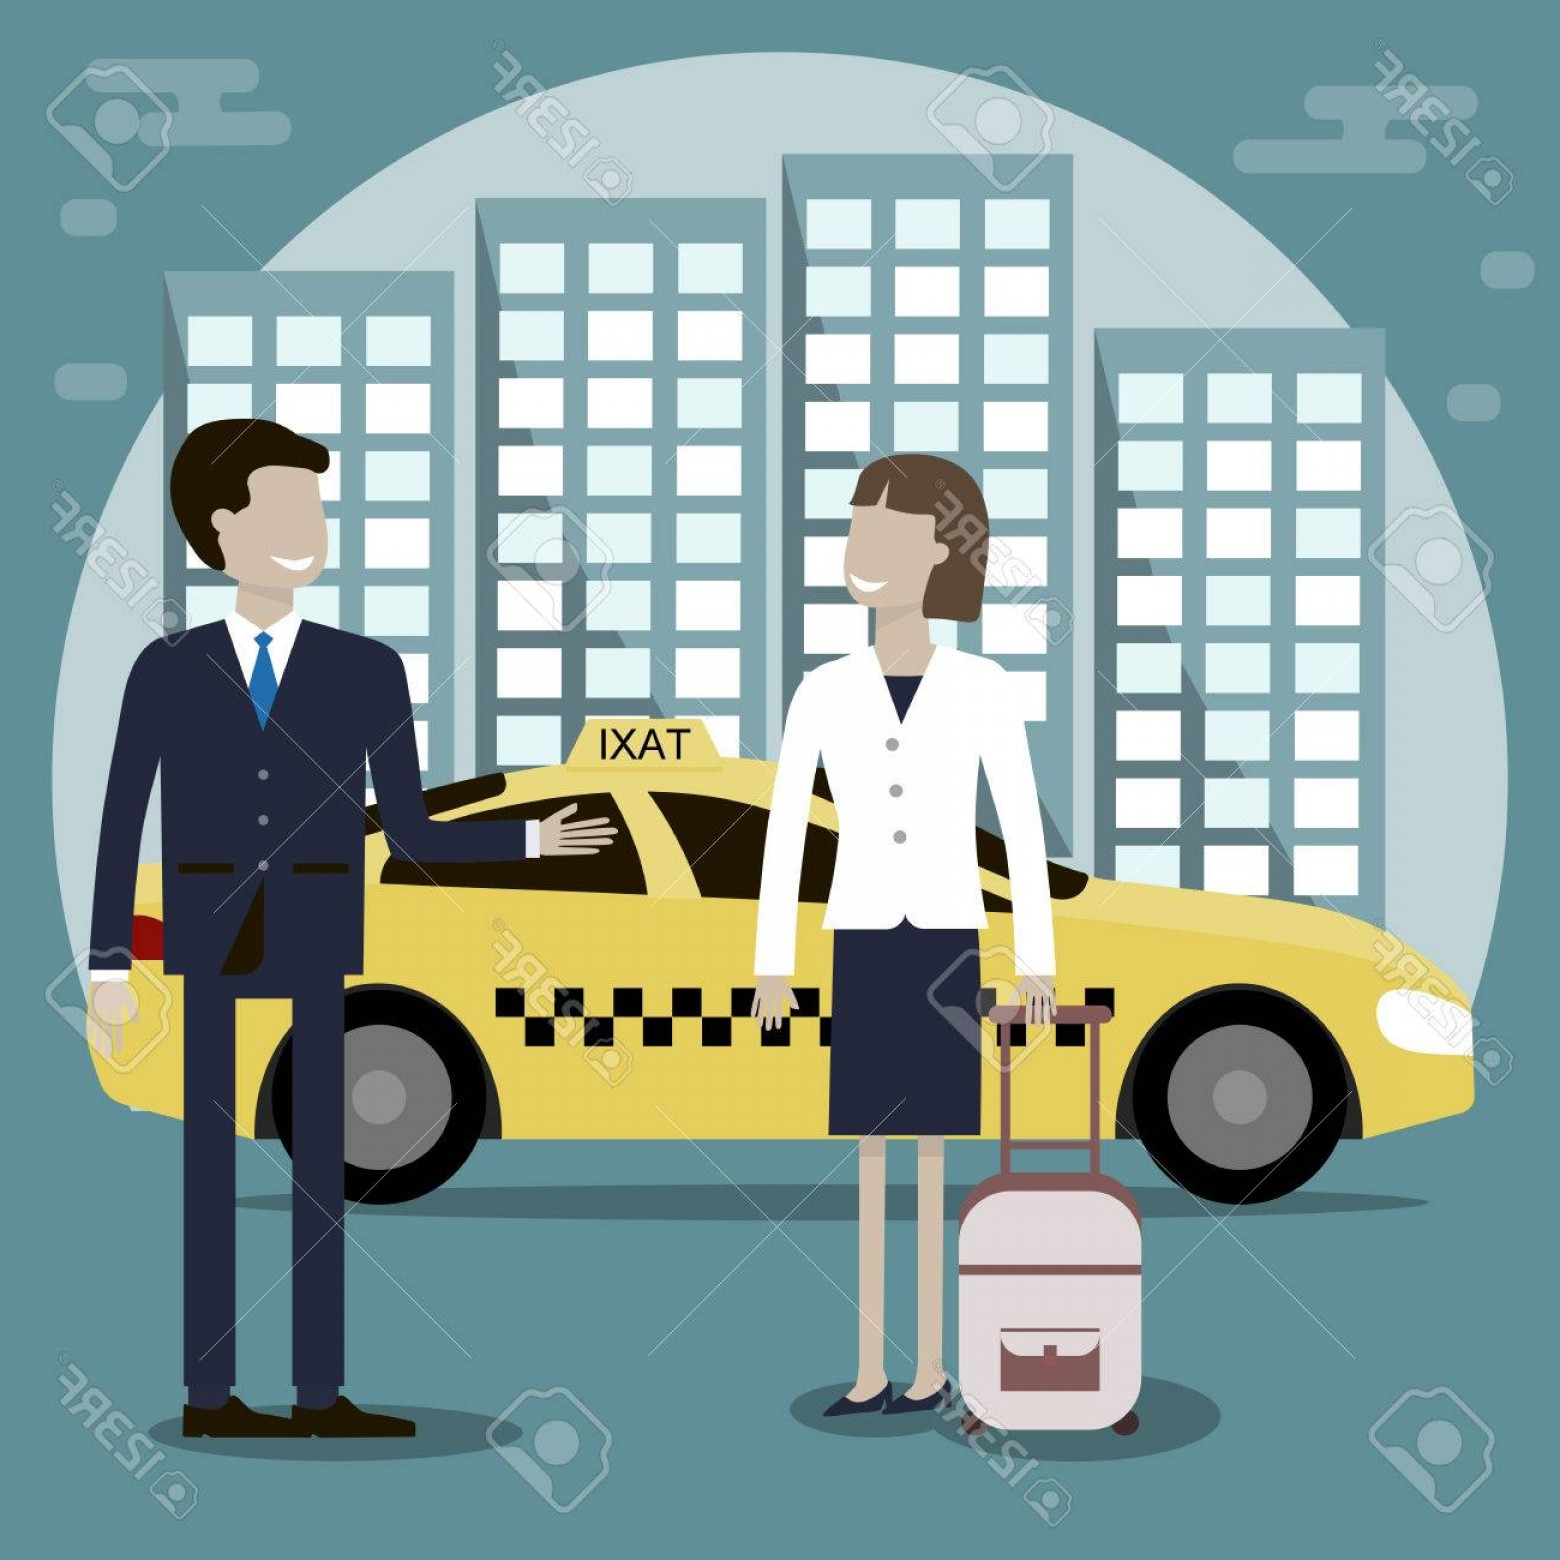 Vector Taxi Cab Driver: Photostock Vector The Taxi Driver Offers A Woman Passenger Services Yellow Taxi Cab In The Background Of The City Vect